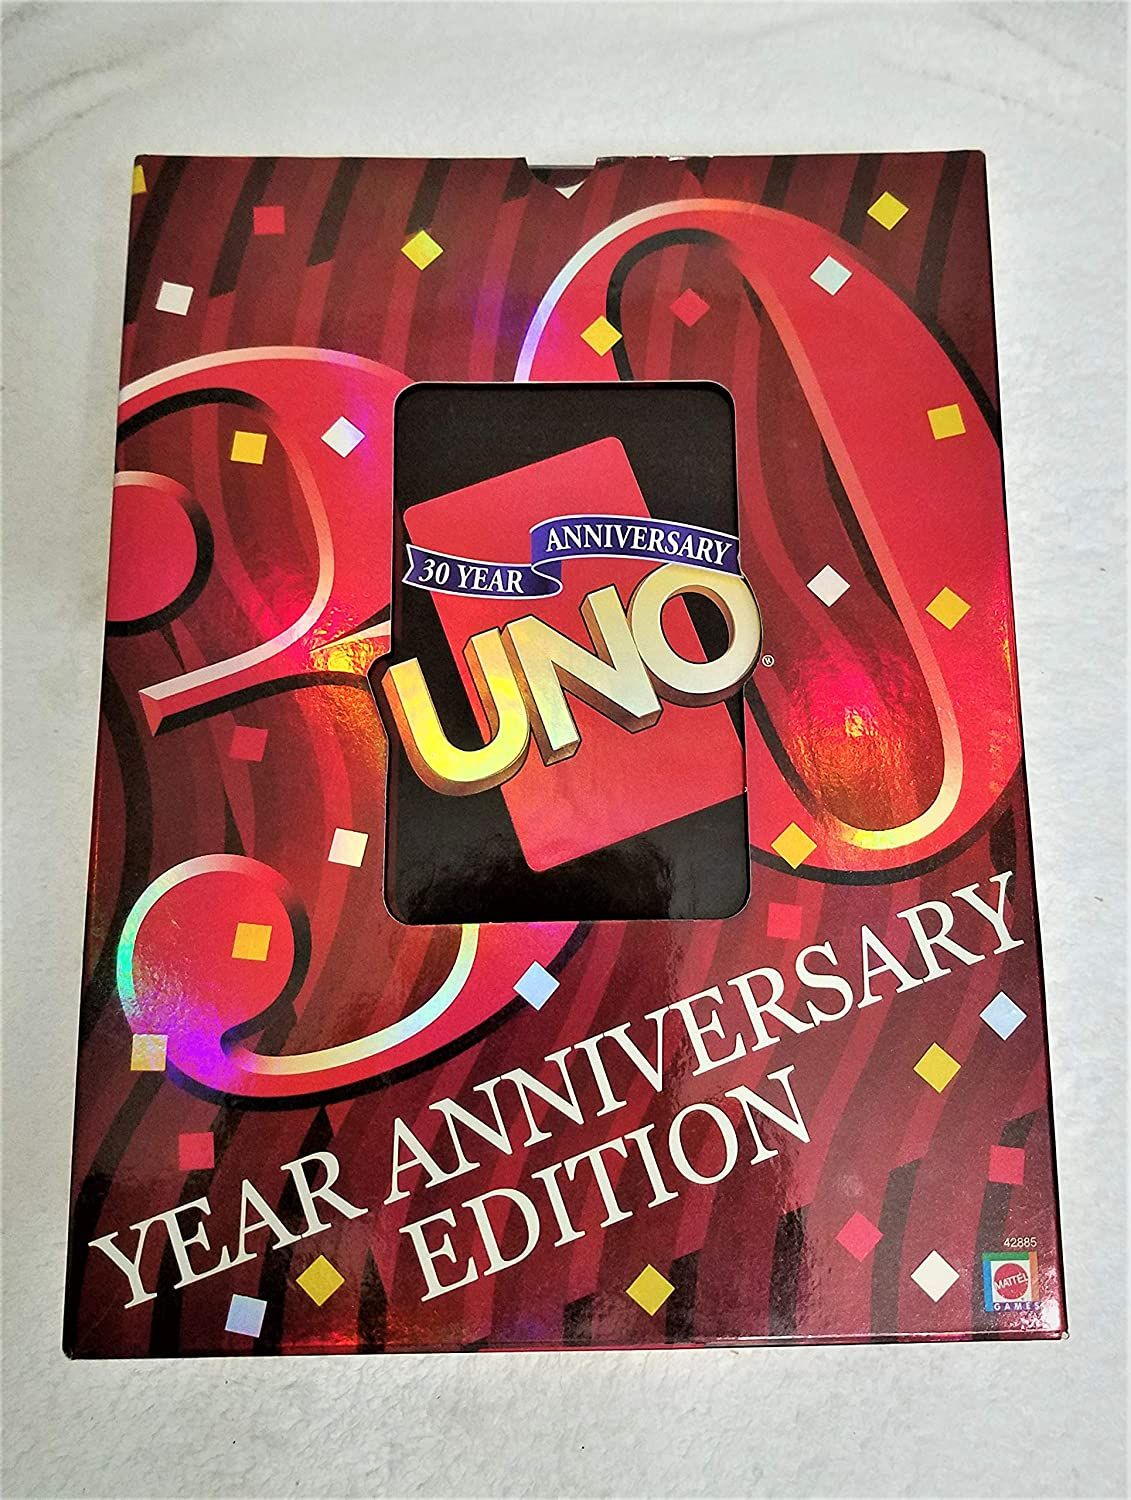 Uno Anniversary Card Rules  Anniversary cards, Cards, Anniversary